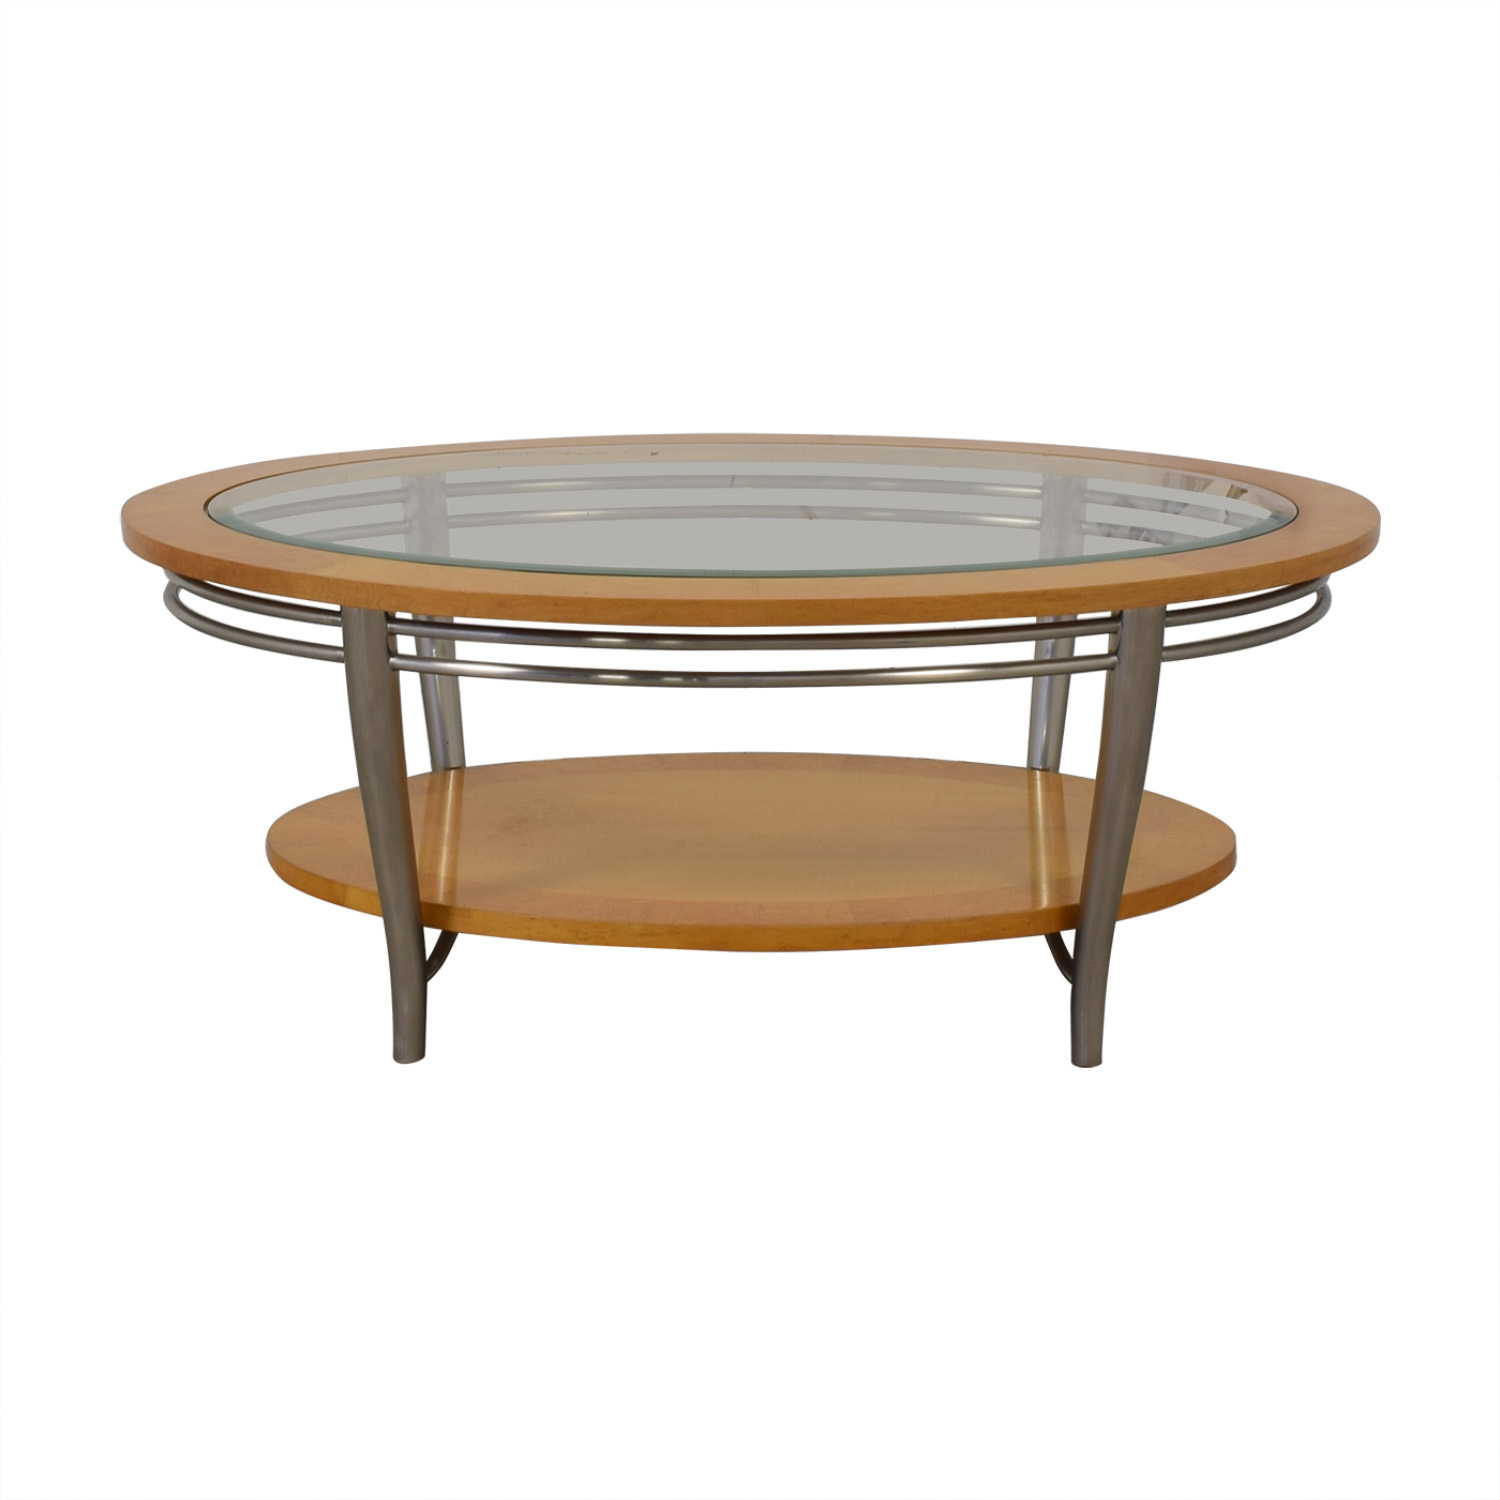 Bernhardt Bernhardt Wooden Oval Coffee Table used